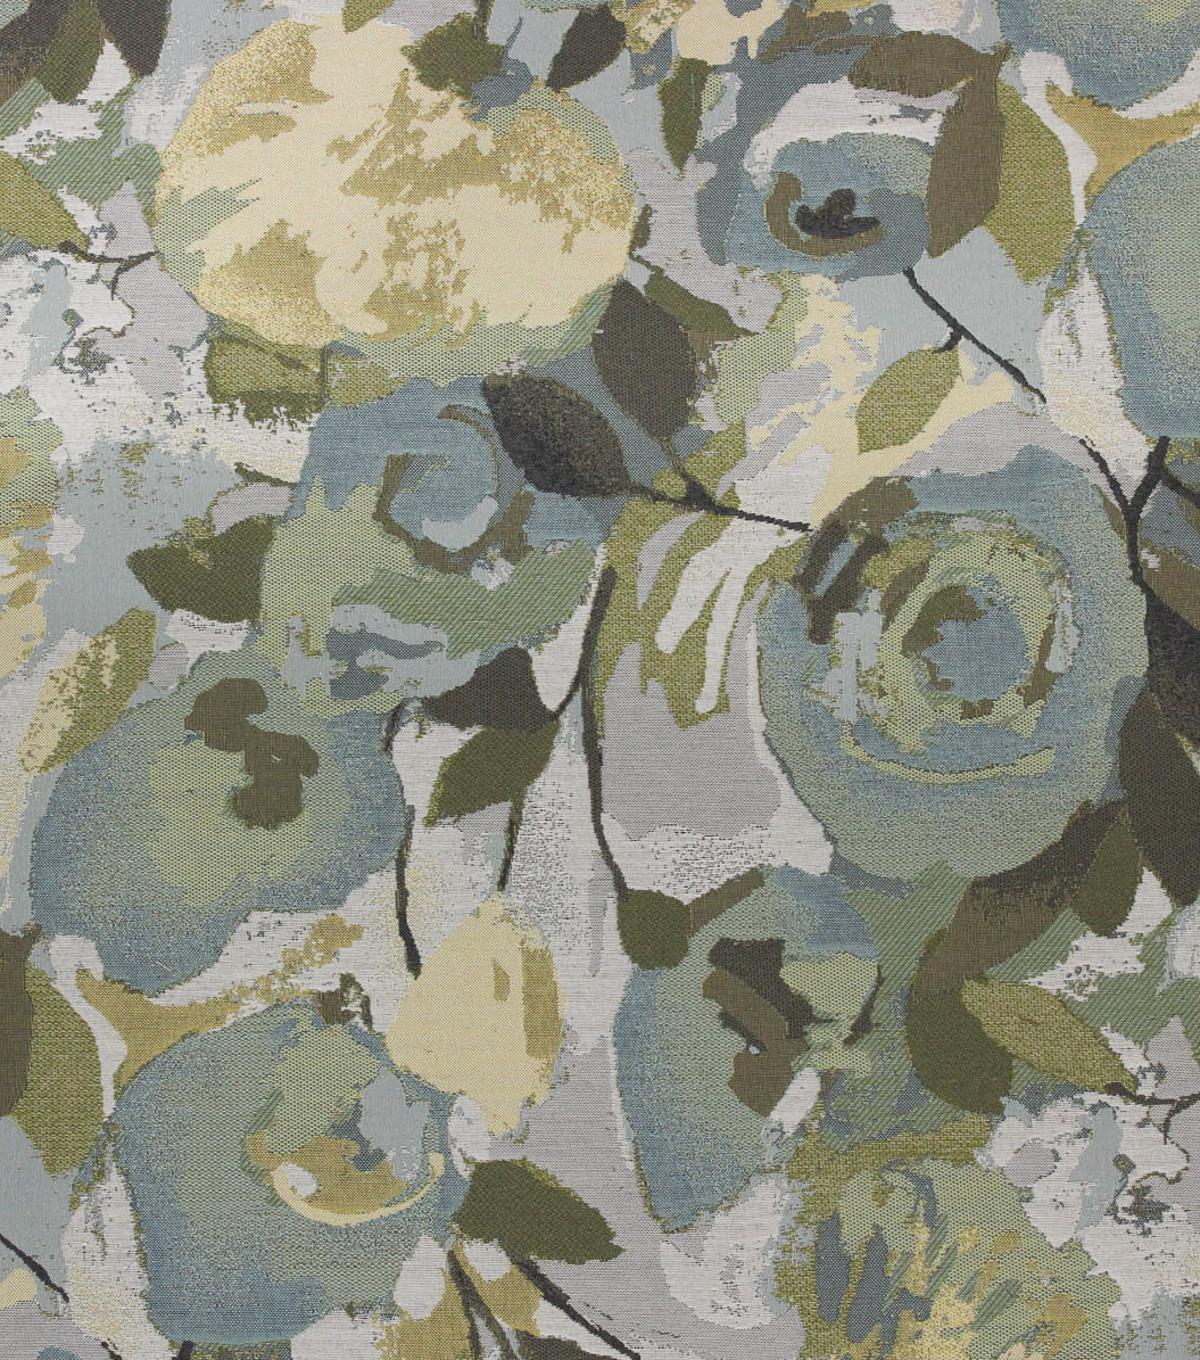 Richloom Studio Multi-Purpose Decor Fabric 54\u0022-Wilbur/Aquamarine